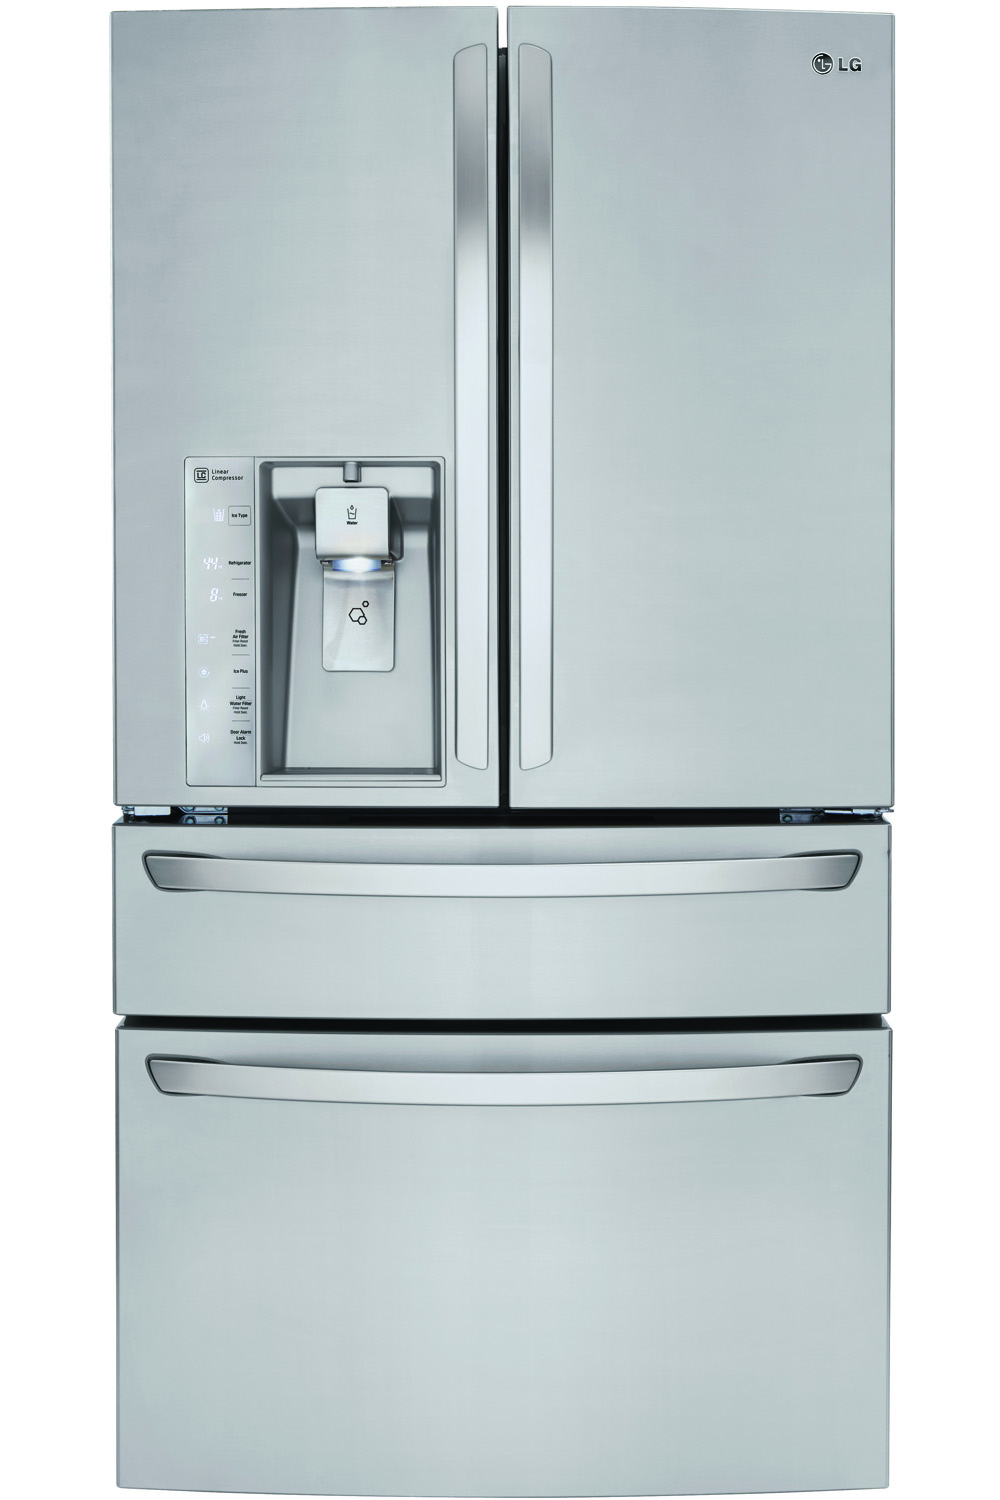 LG Stainless Steel 4-Door French Door Refrigerator